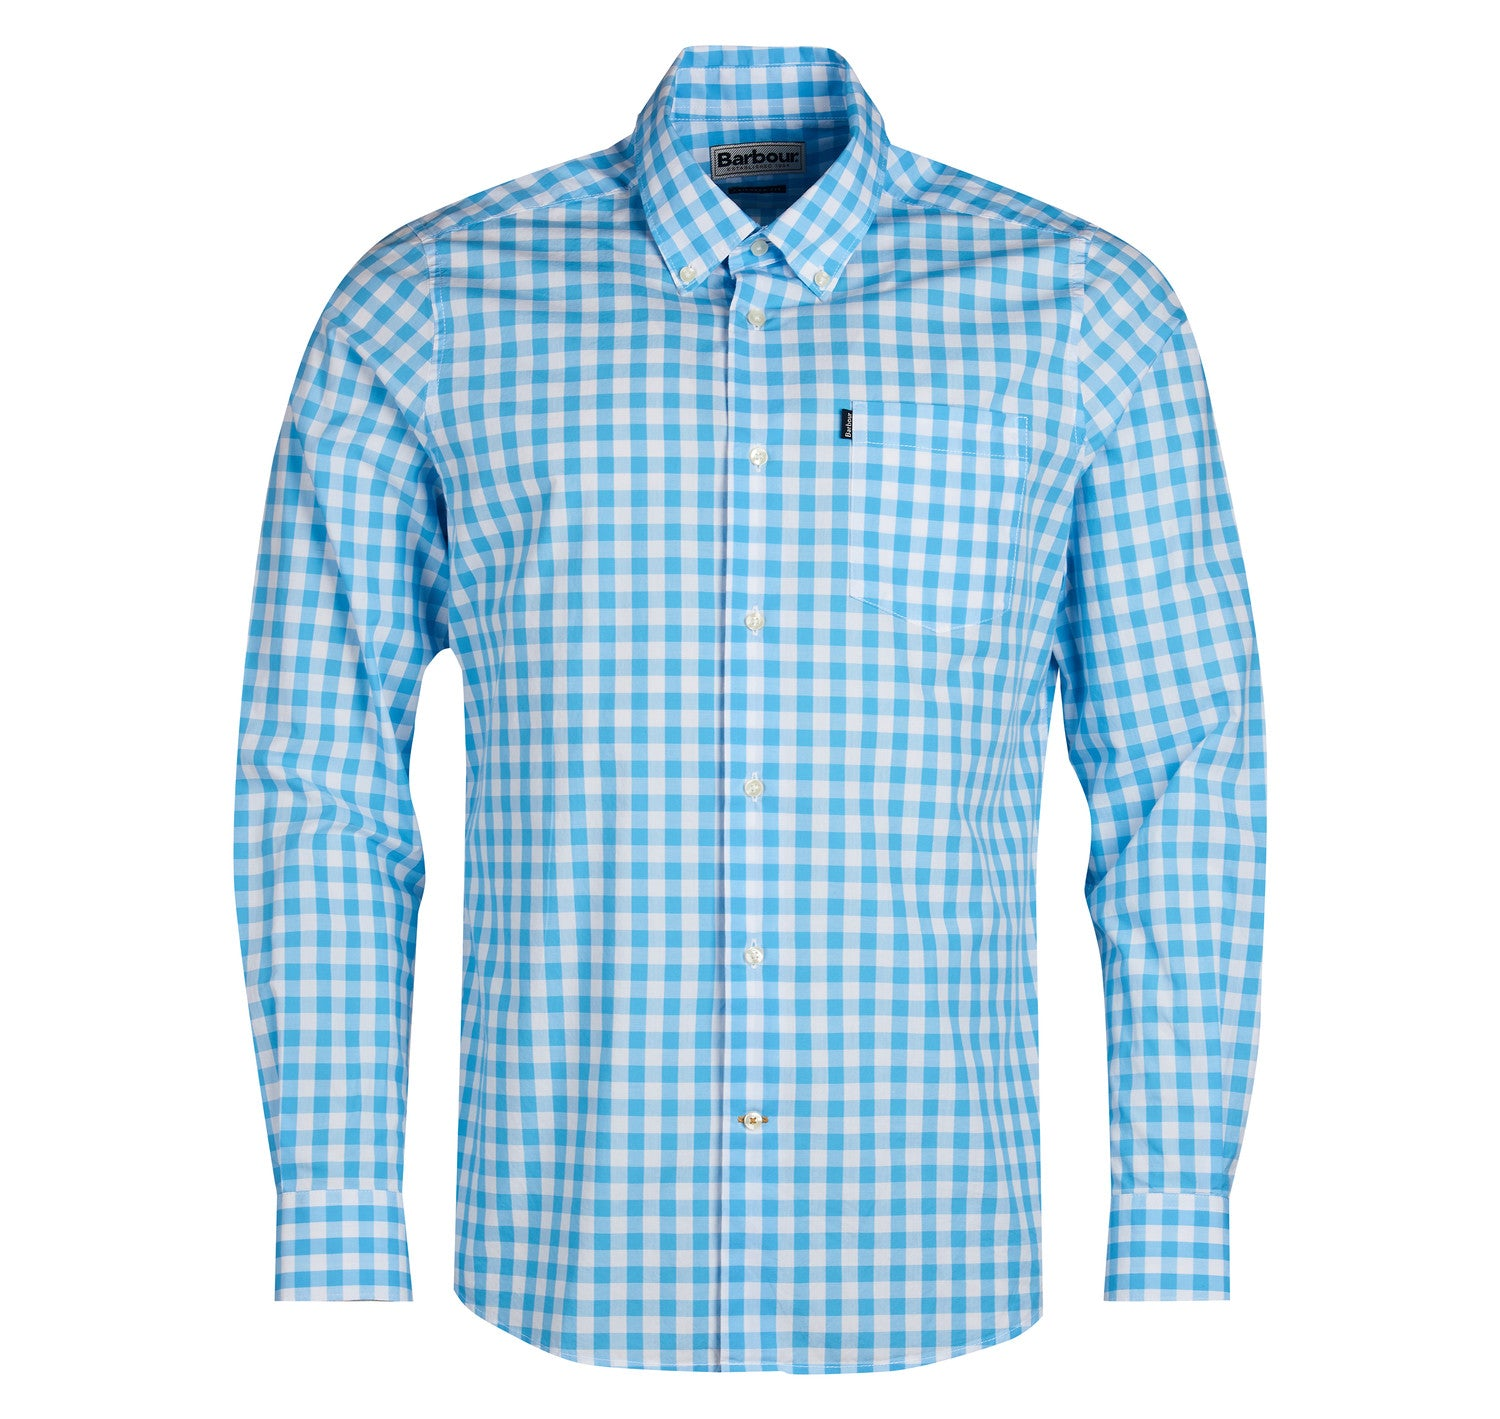 Barbour Gingham 3 Long Sleeved Shirt for Men in Pale Blue